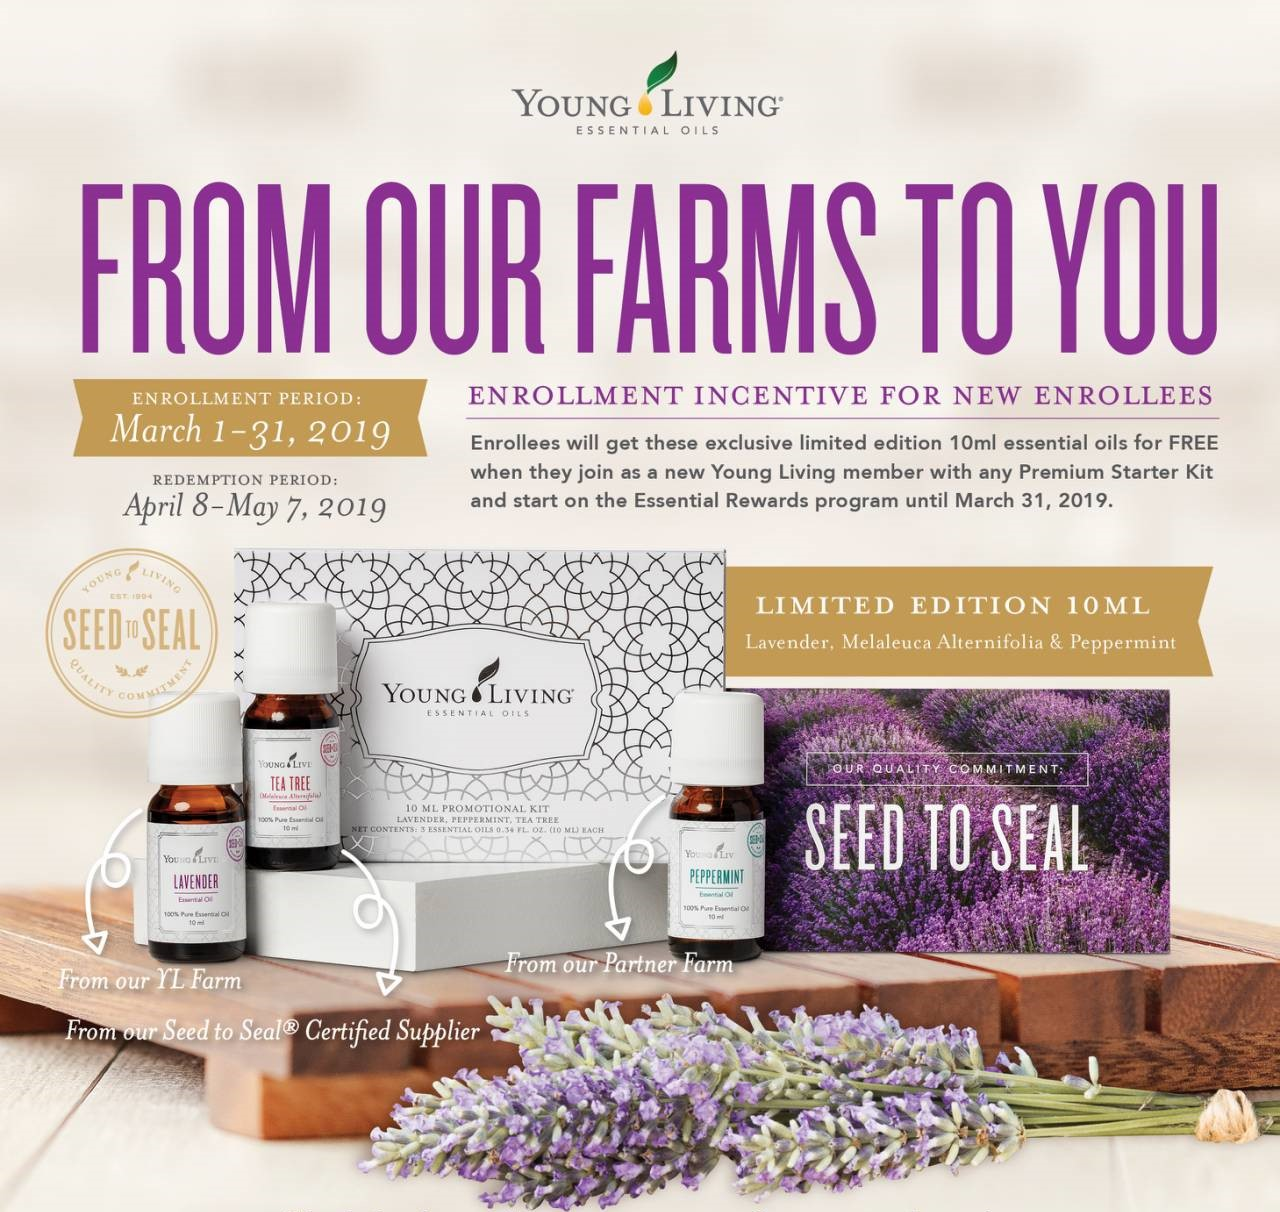 Young Living New Member Voucher 2019 Young Living Philippines Promotions | Young Living Essential Oils